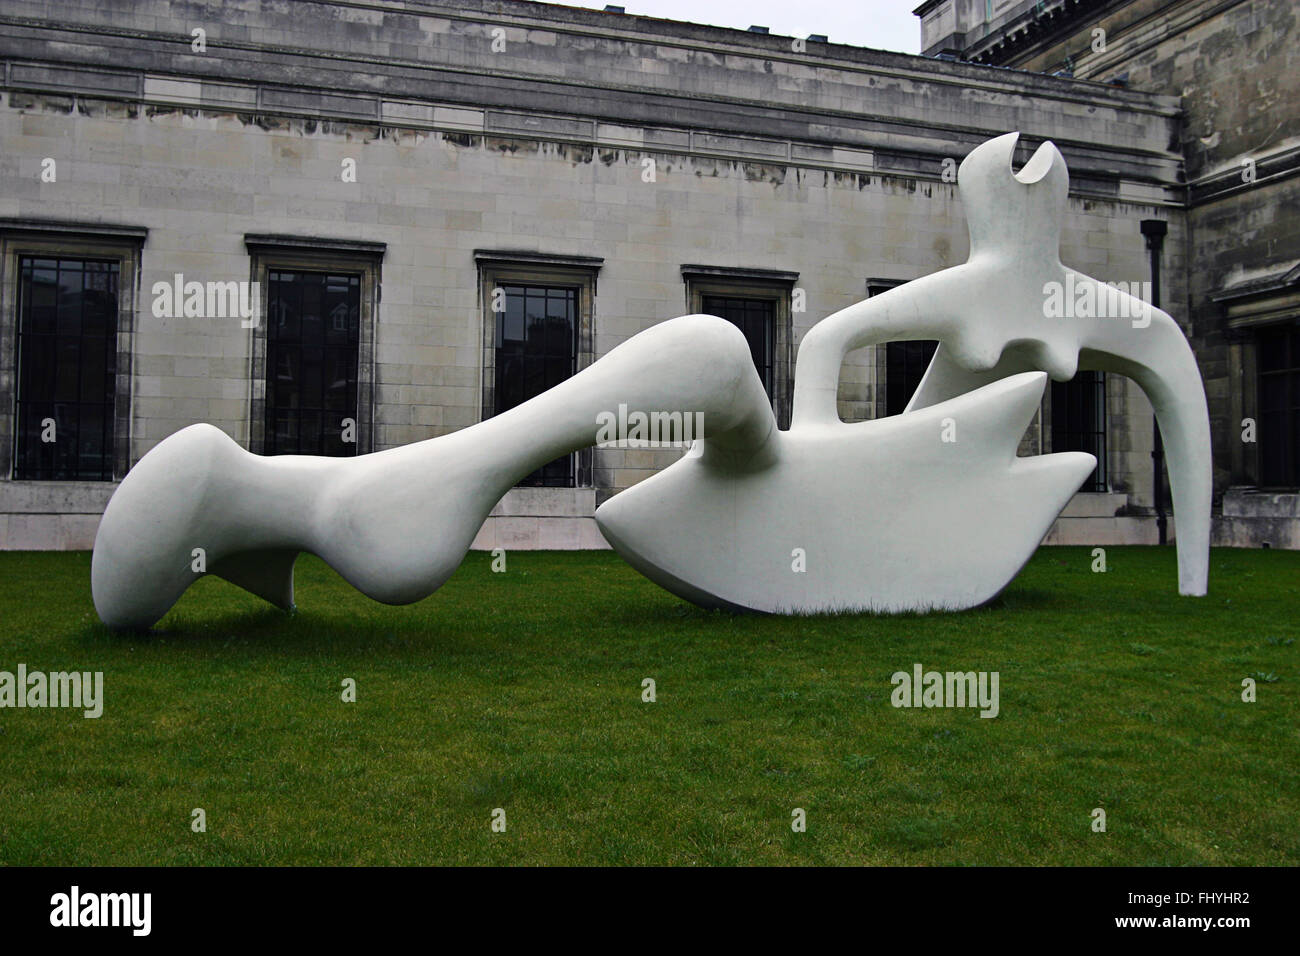 Henry Moore Sculpture, Cambridge England - Stock Image